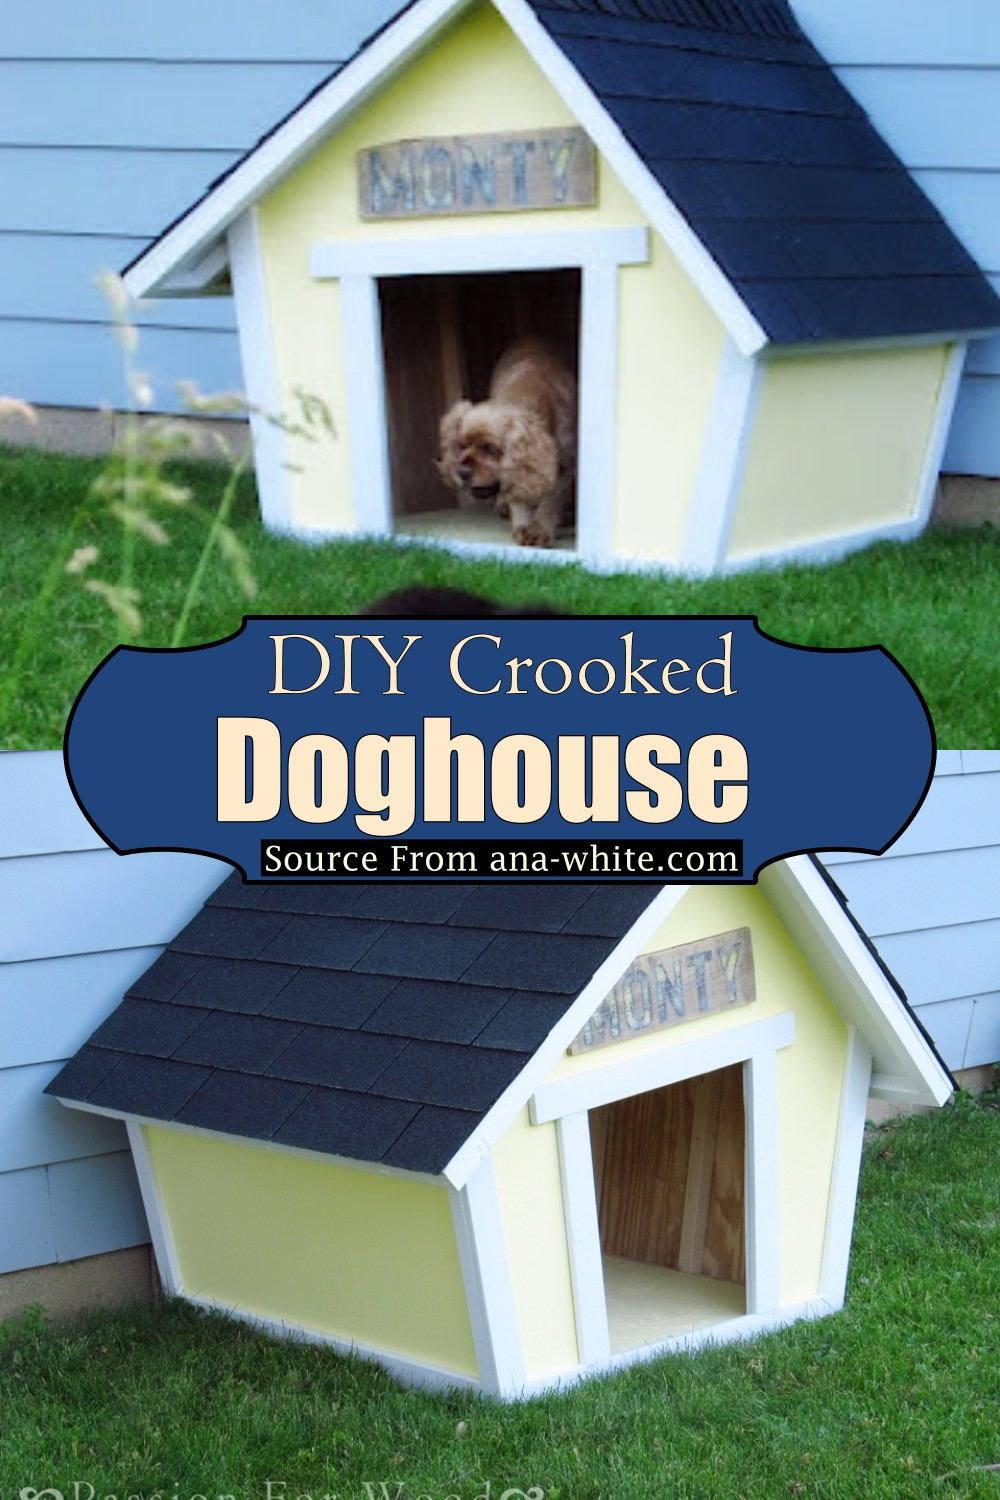 DIY Crooked Doghouse